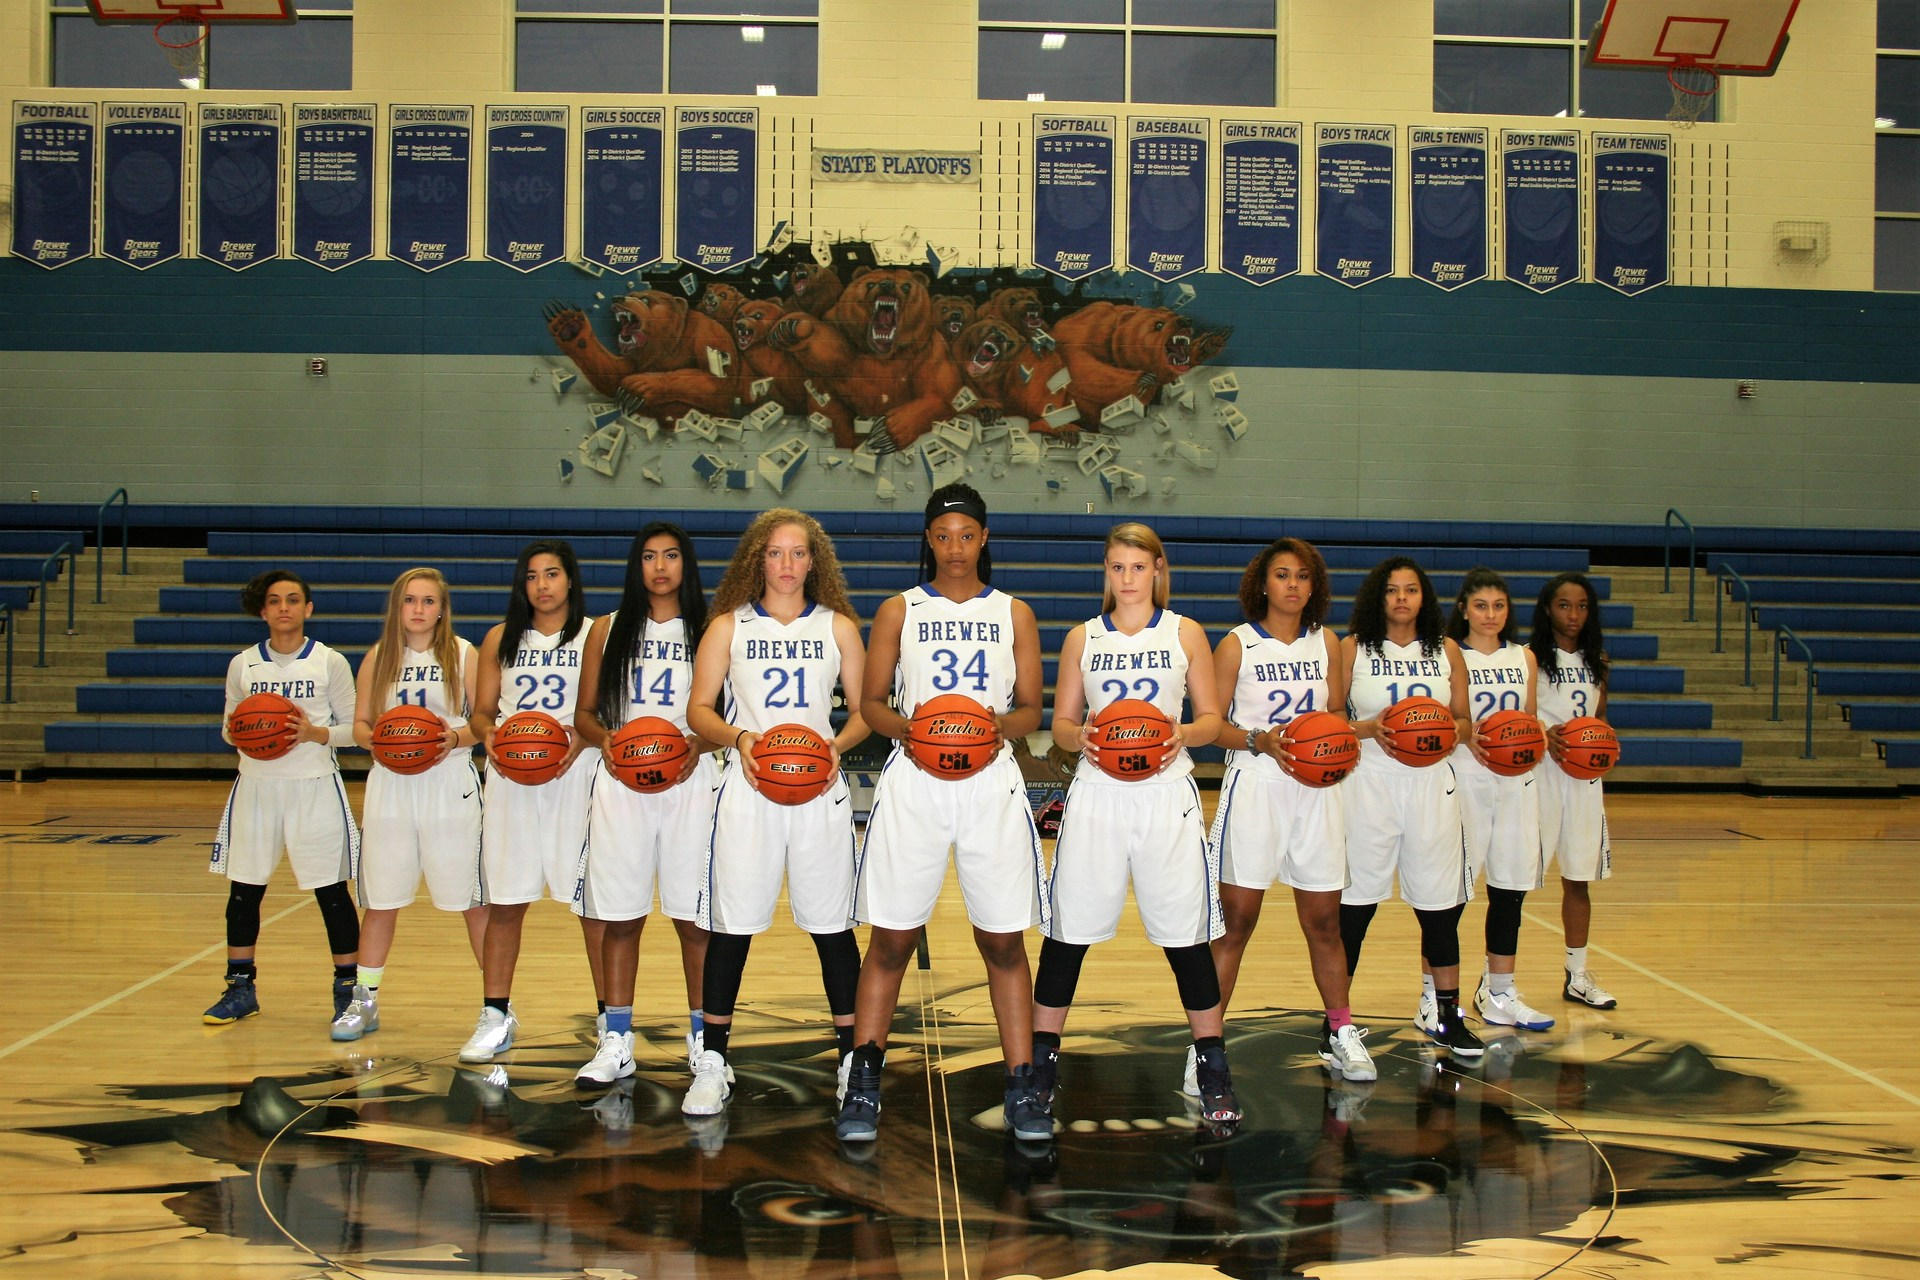 Your 2017-18 Lady Bear Varsity Basketball Team! #GoBears  #GRIT